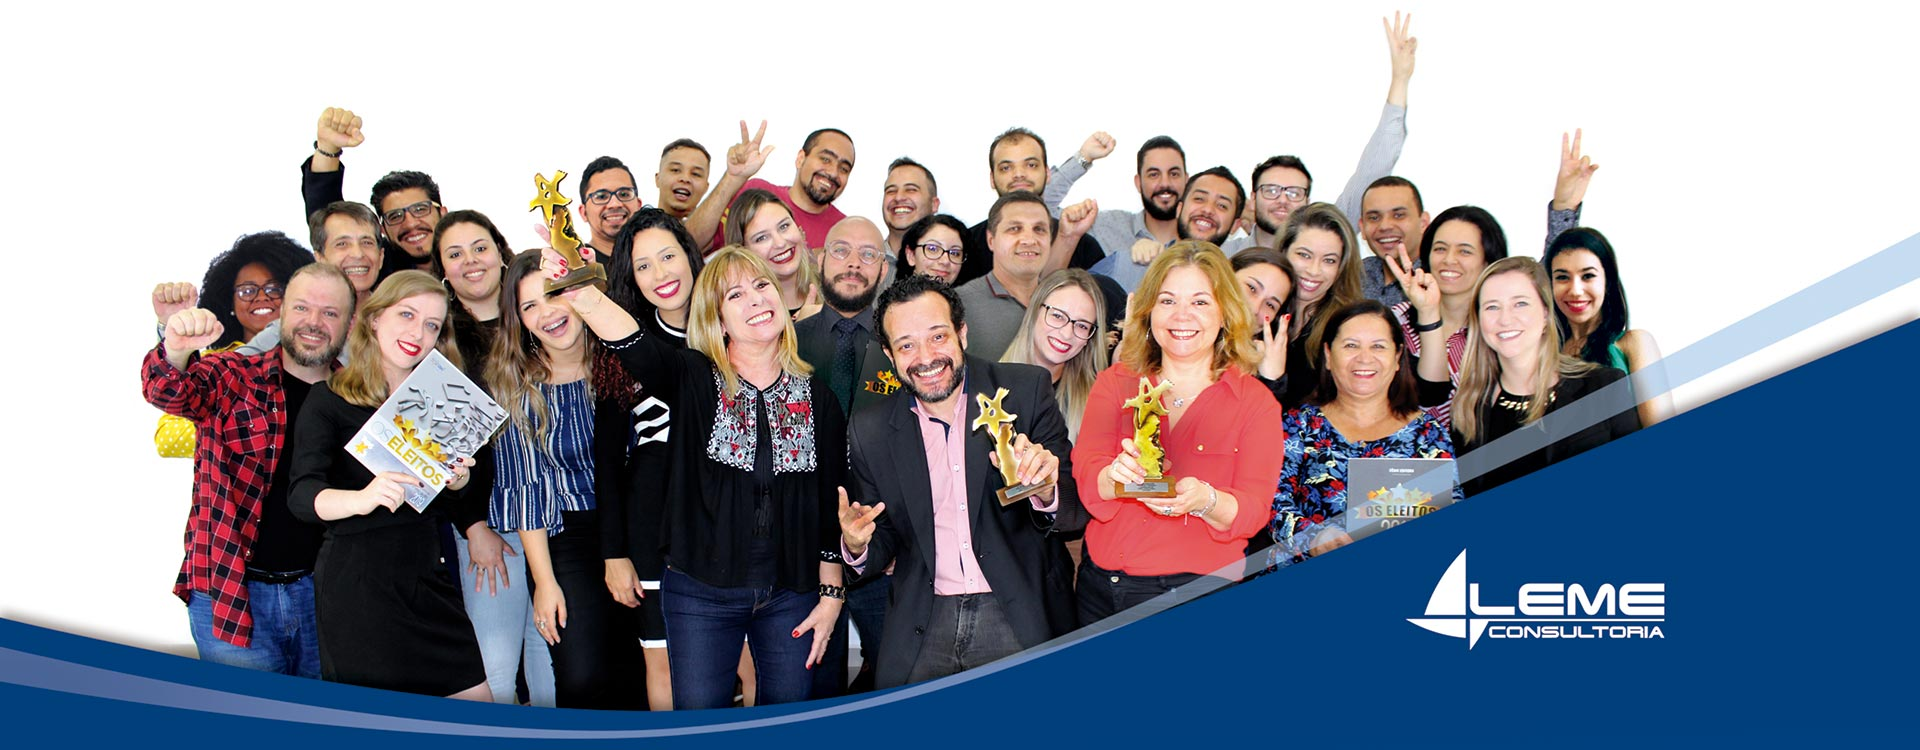 Equipe Leme Consultoria - Tricampeã do Top of Mind